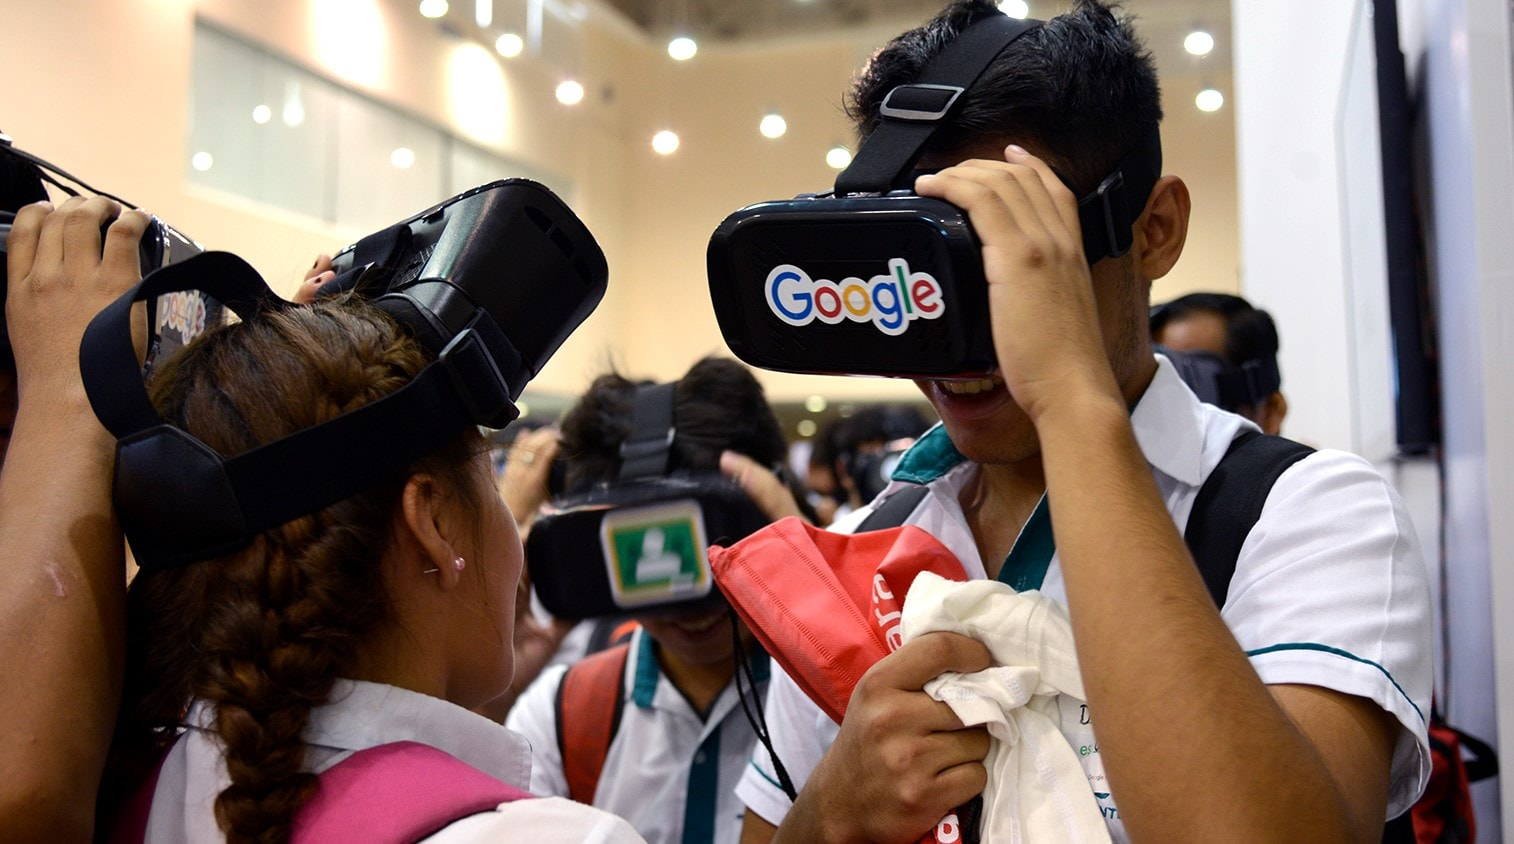 Members whose applications are accepted go to courses with Google mentors to define, design and launch educational innovation projects. - Image: Bigstock.